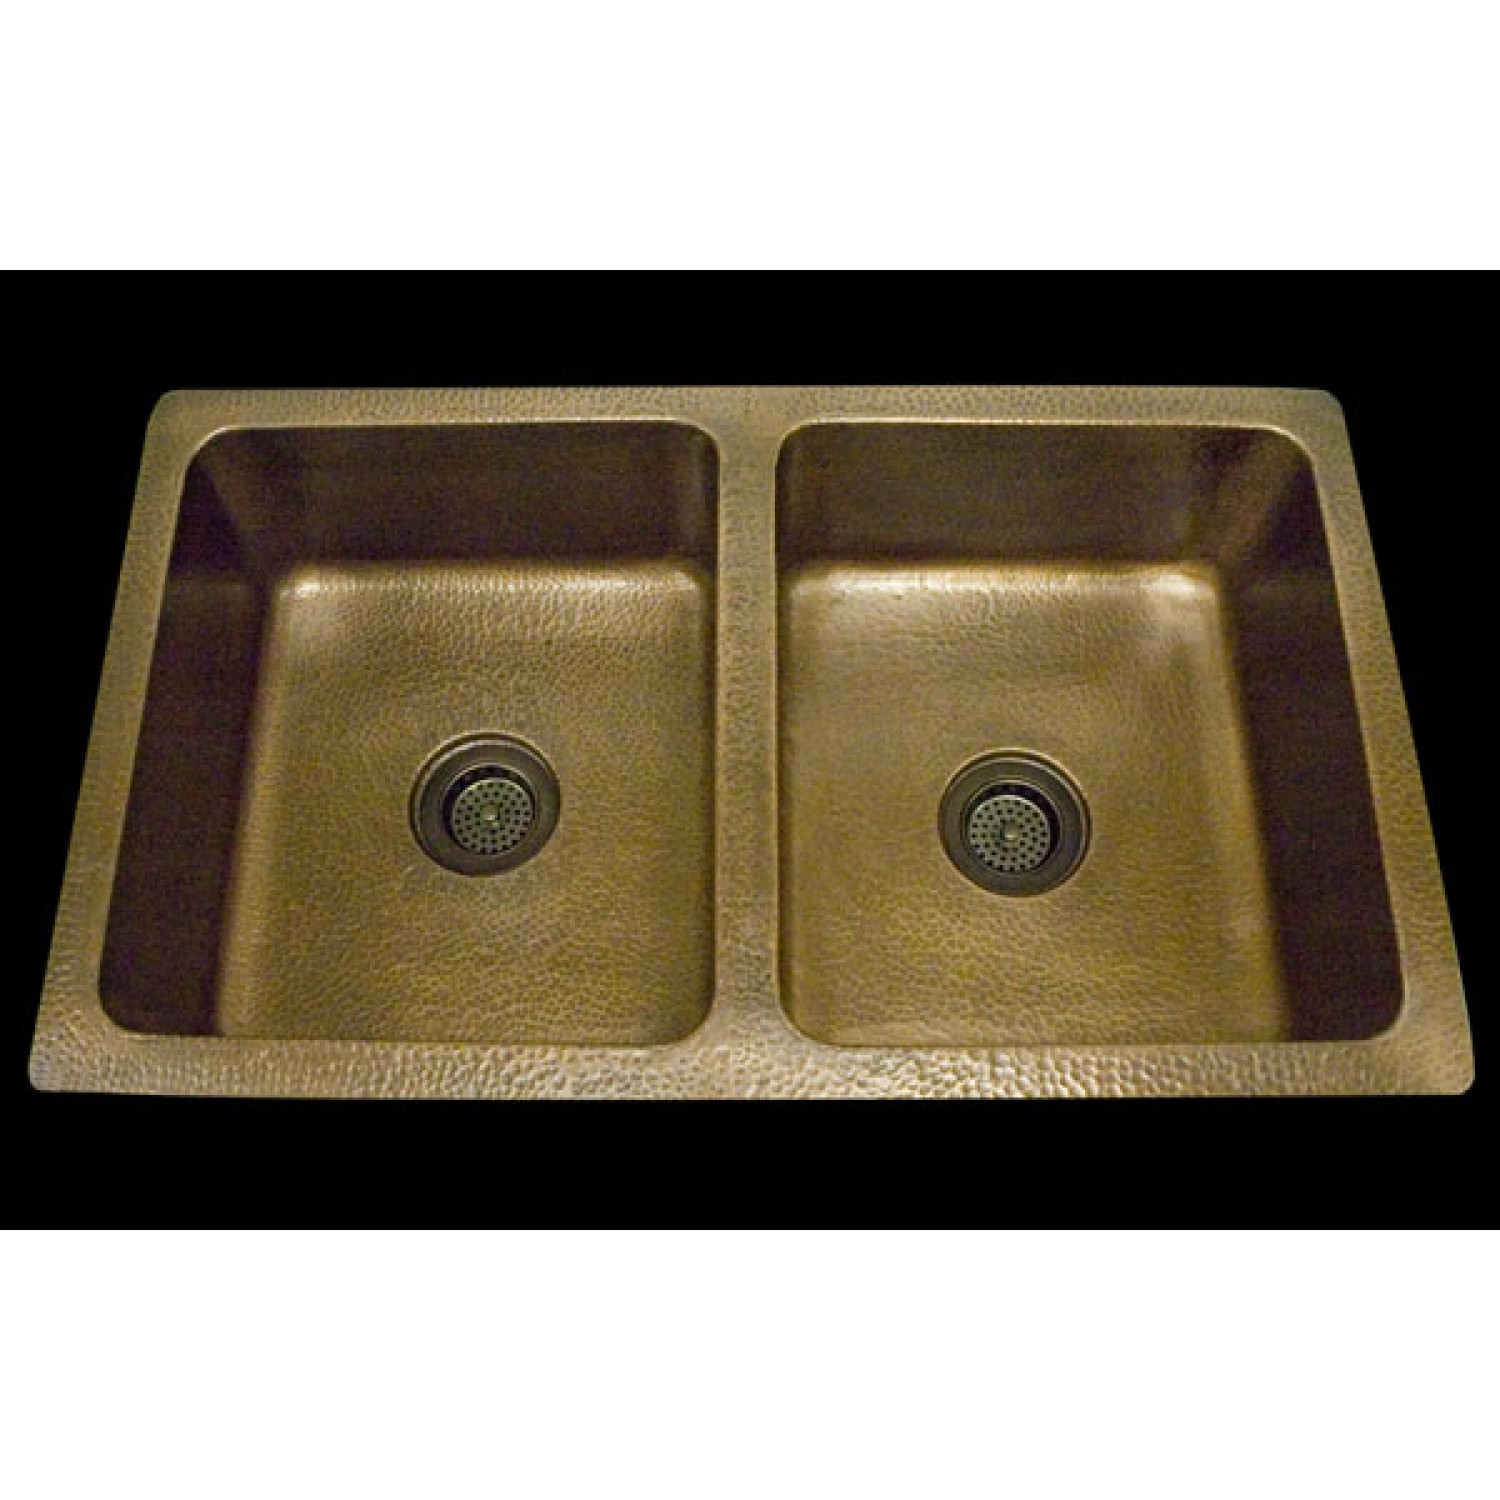 10 Photos To American Standard Cast Iron Kitchen Sink